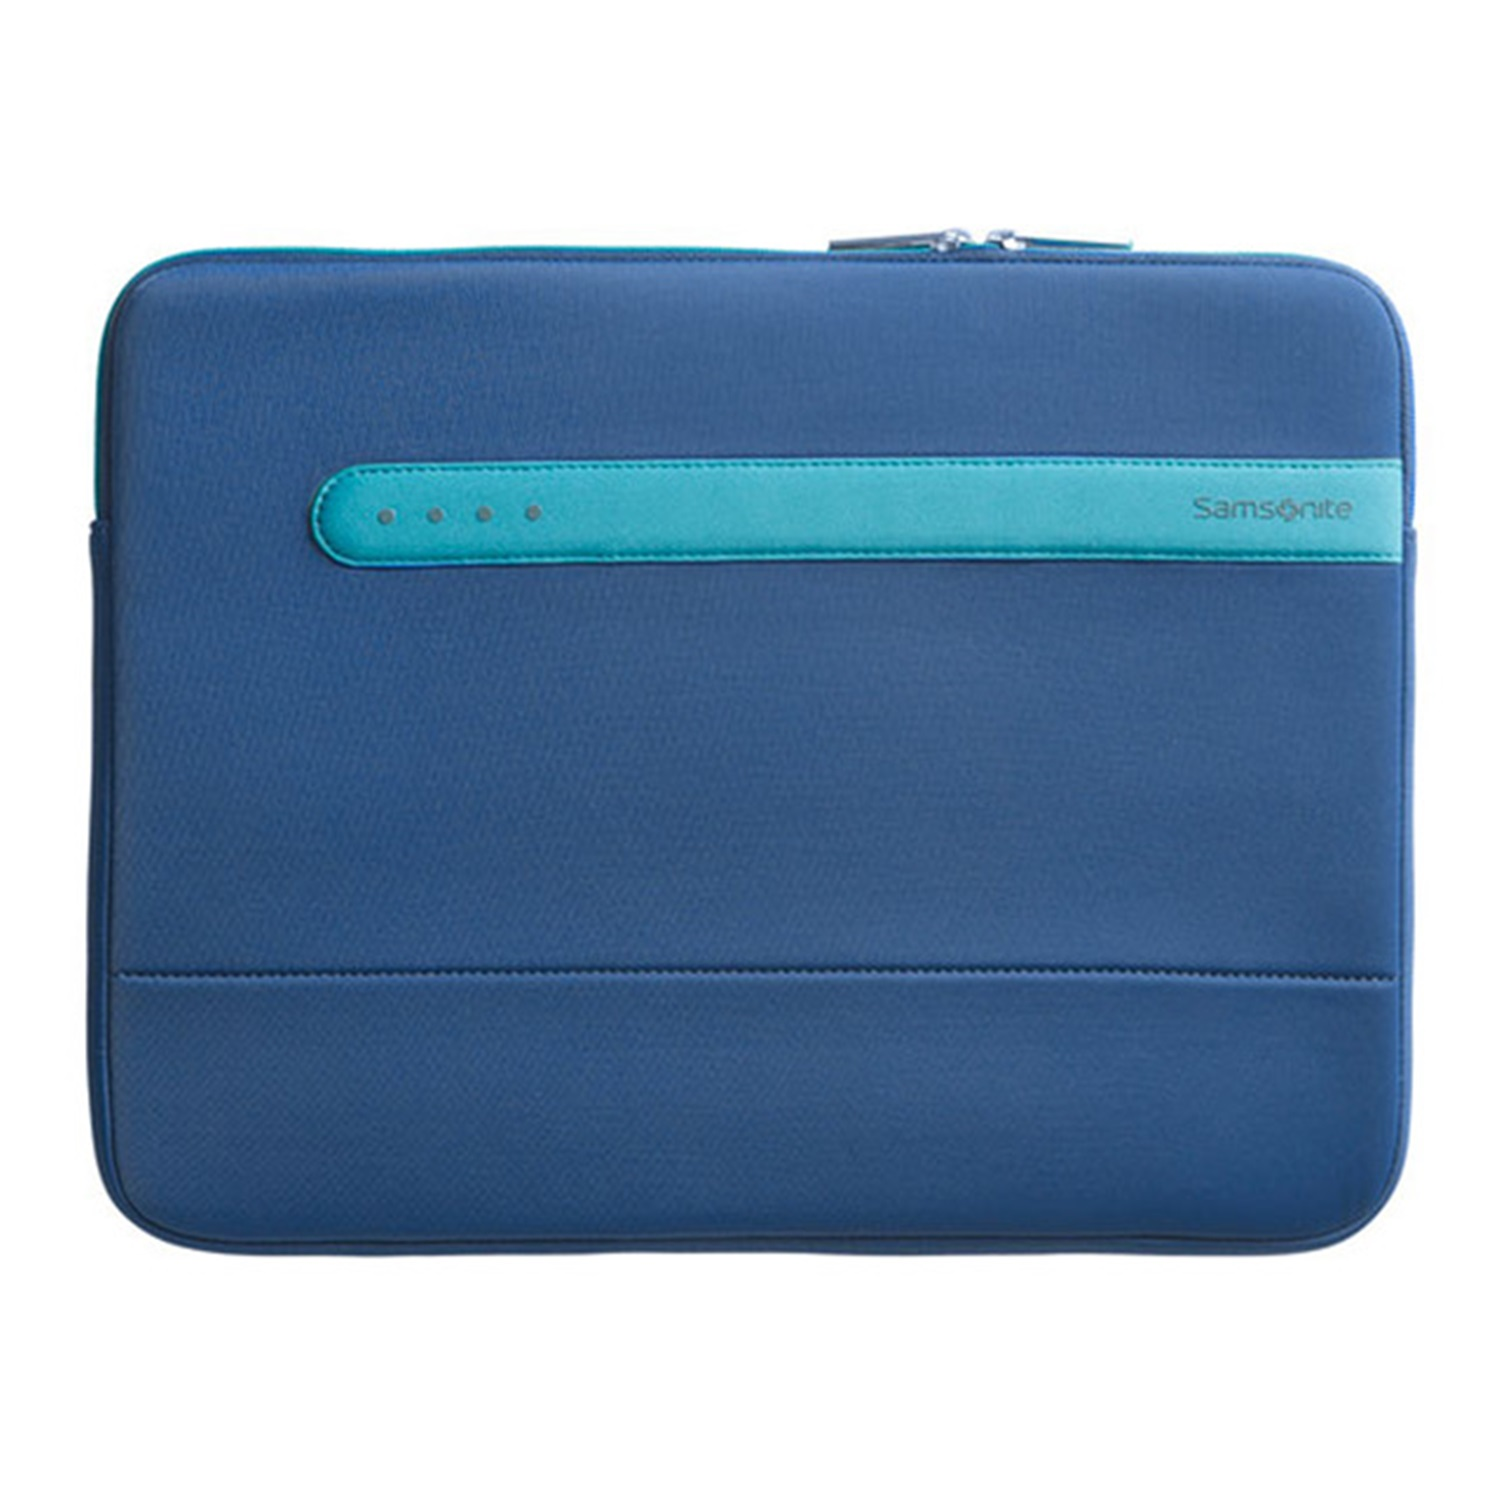 SAMSONITE - BORSE NOTEBOOK - 5414847443091